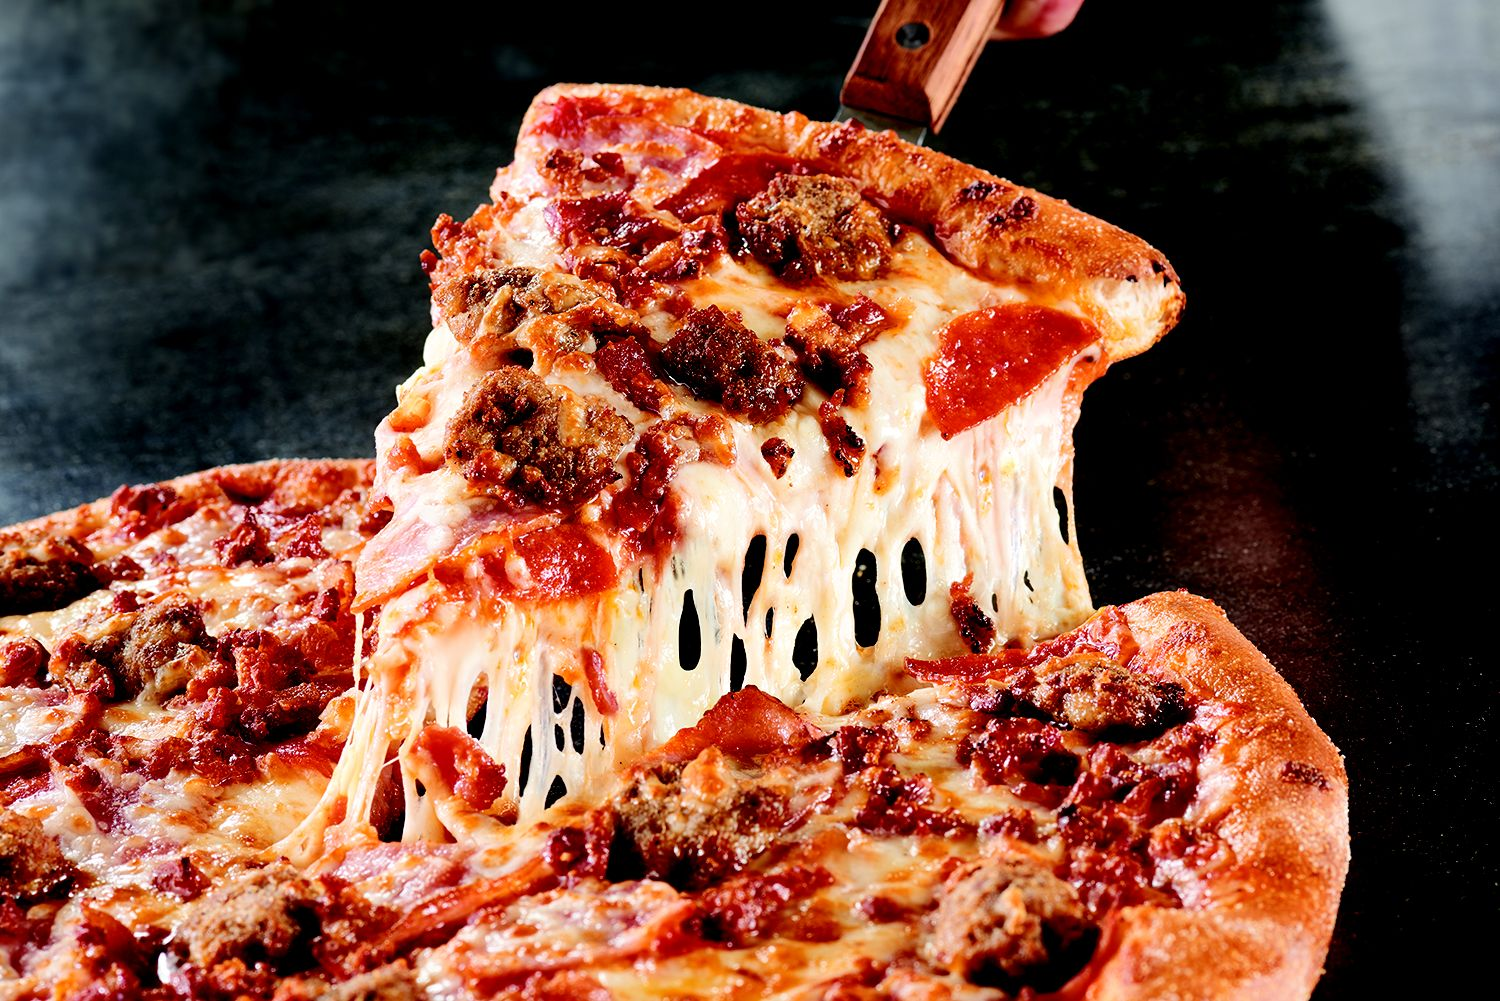 Marco's Pizza Expands Its National Footprint Signing 88 New Franchise Agreements So Far This Year with Over 200 New Stores in Development